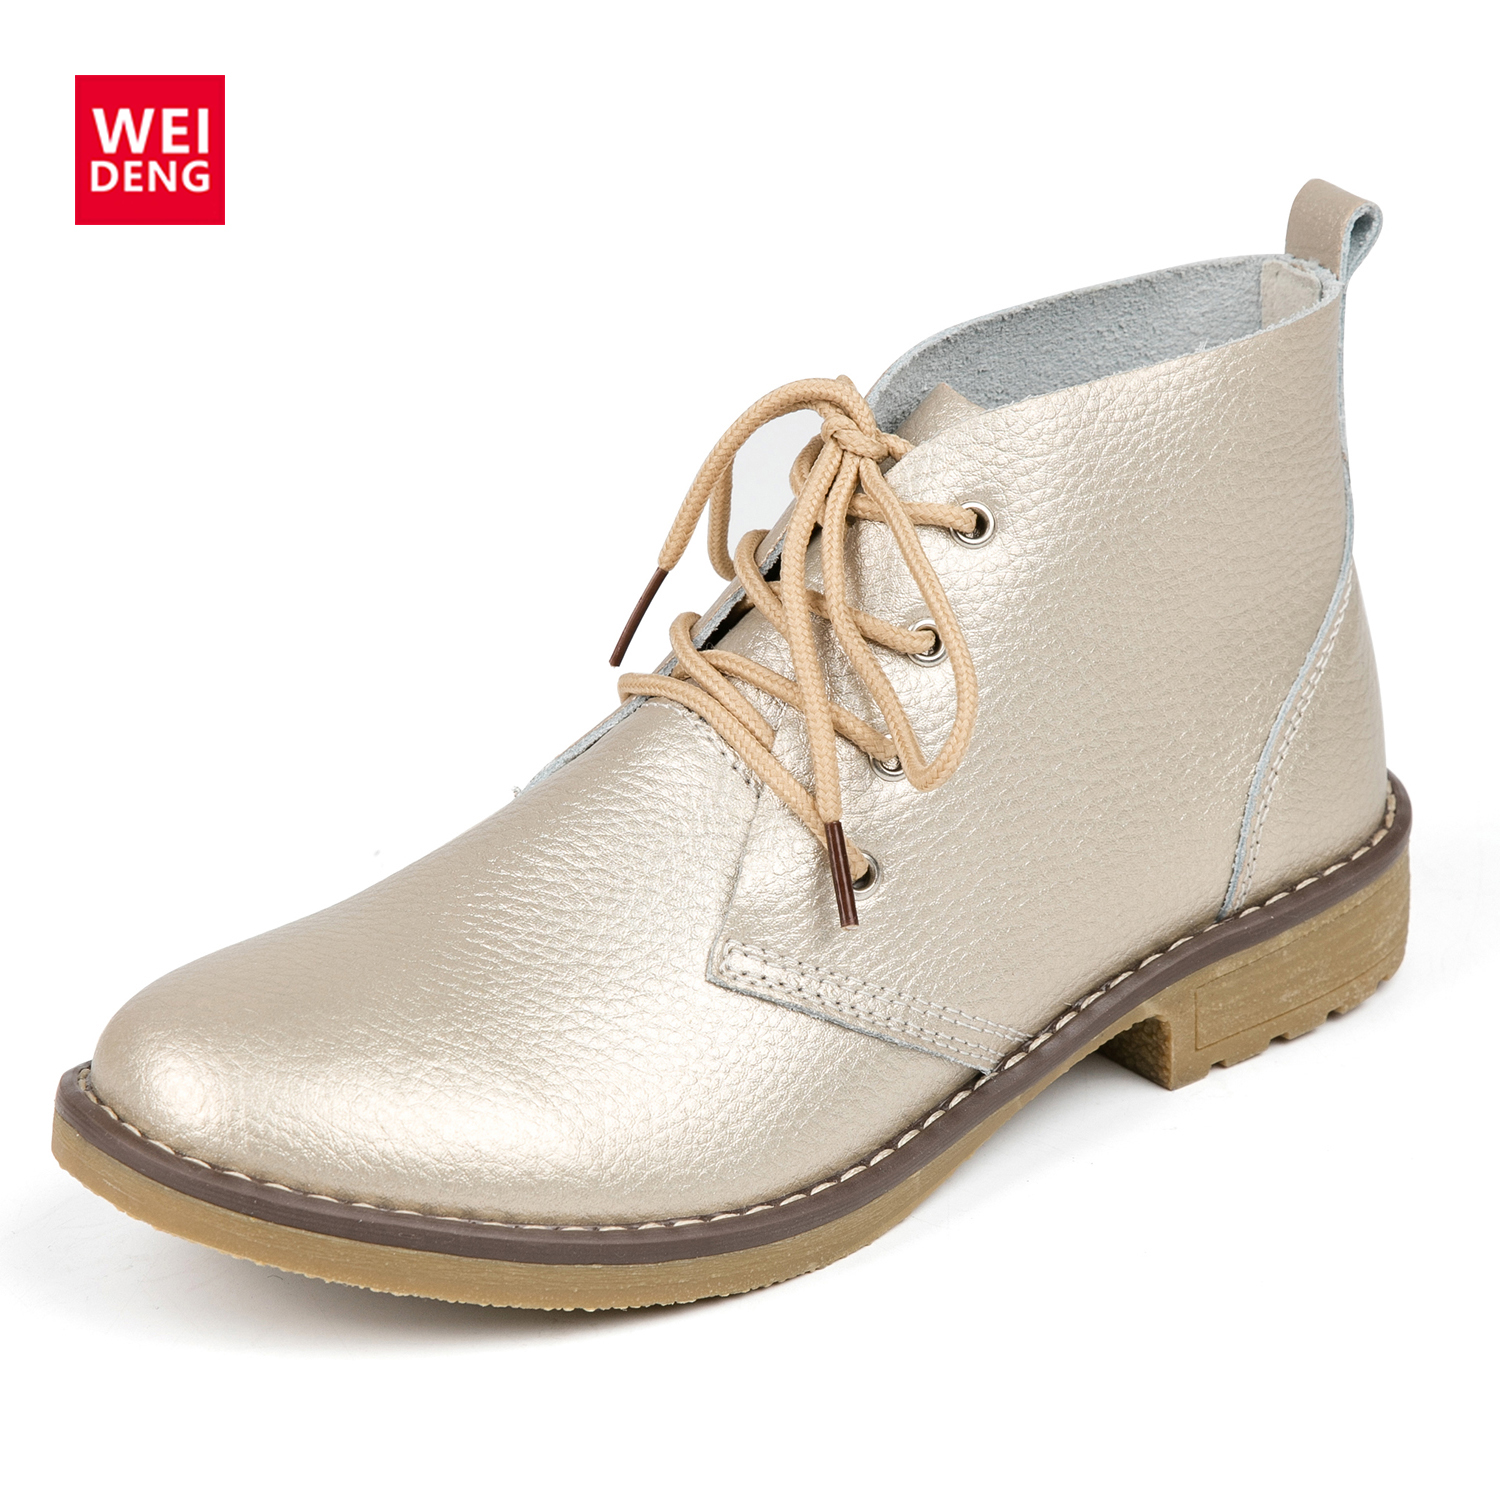 WeiDeng Genuine Leather Ankle Boots Women Classic Matin Fashion Flats Winter Lace Up High Top Casual Waterproof Shoes Female